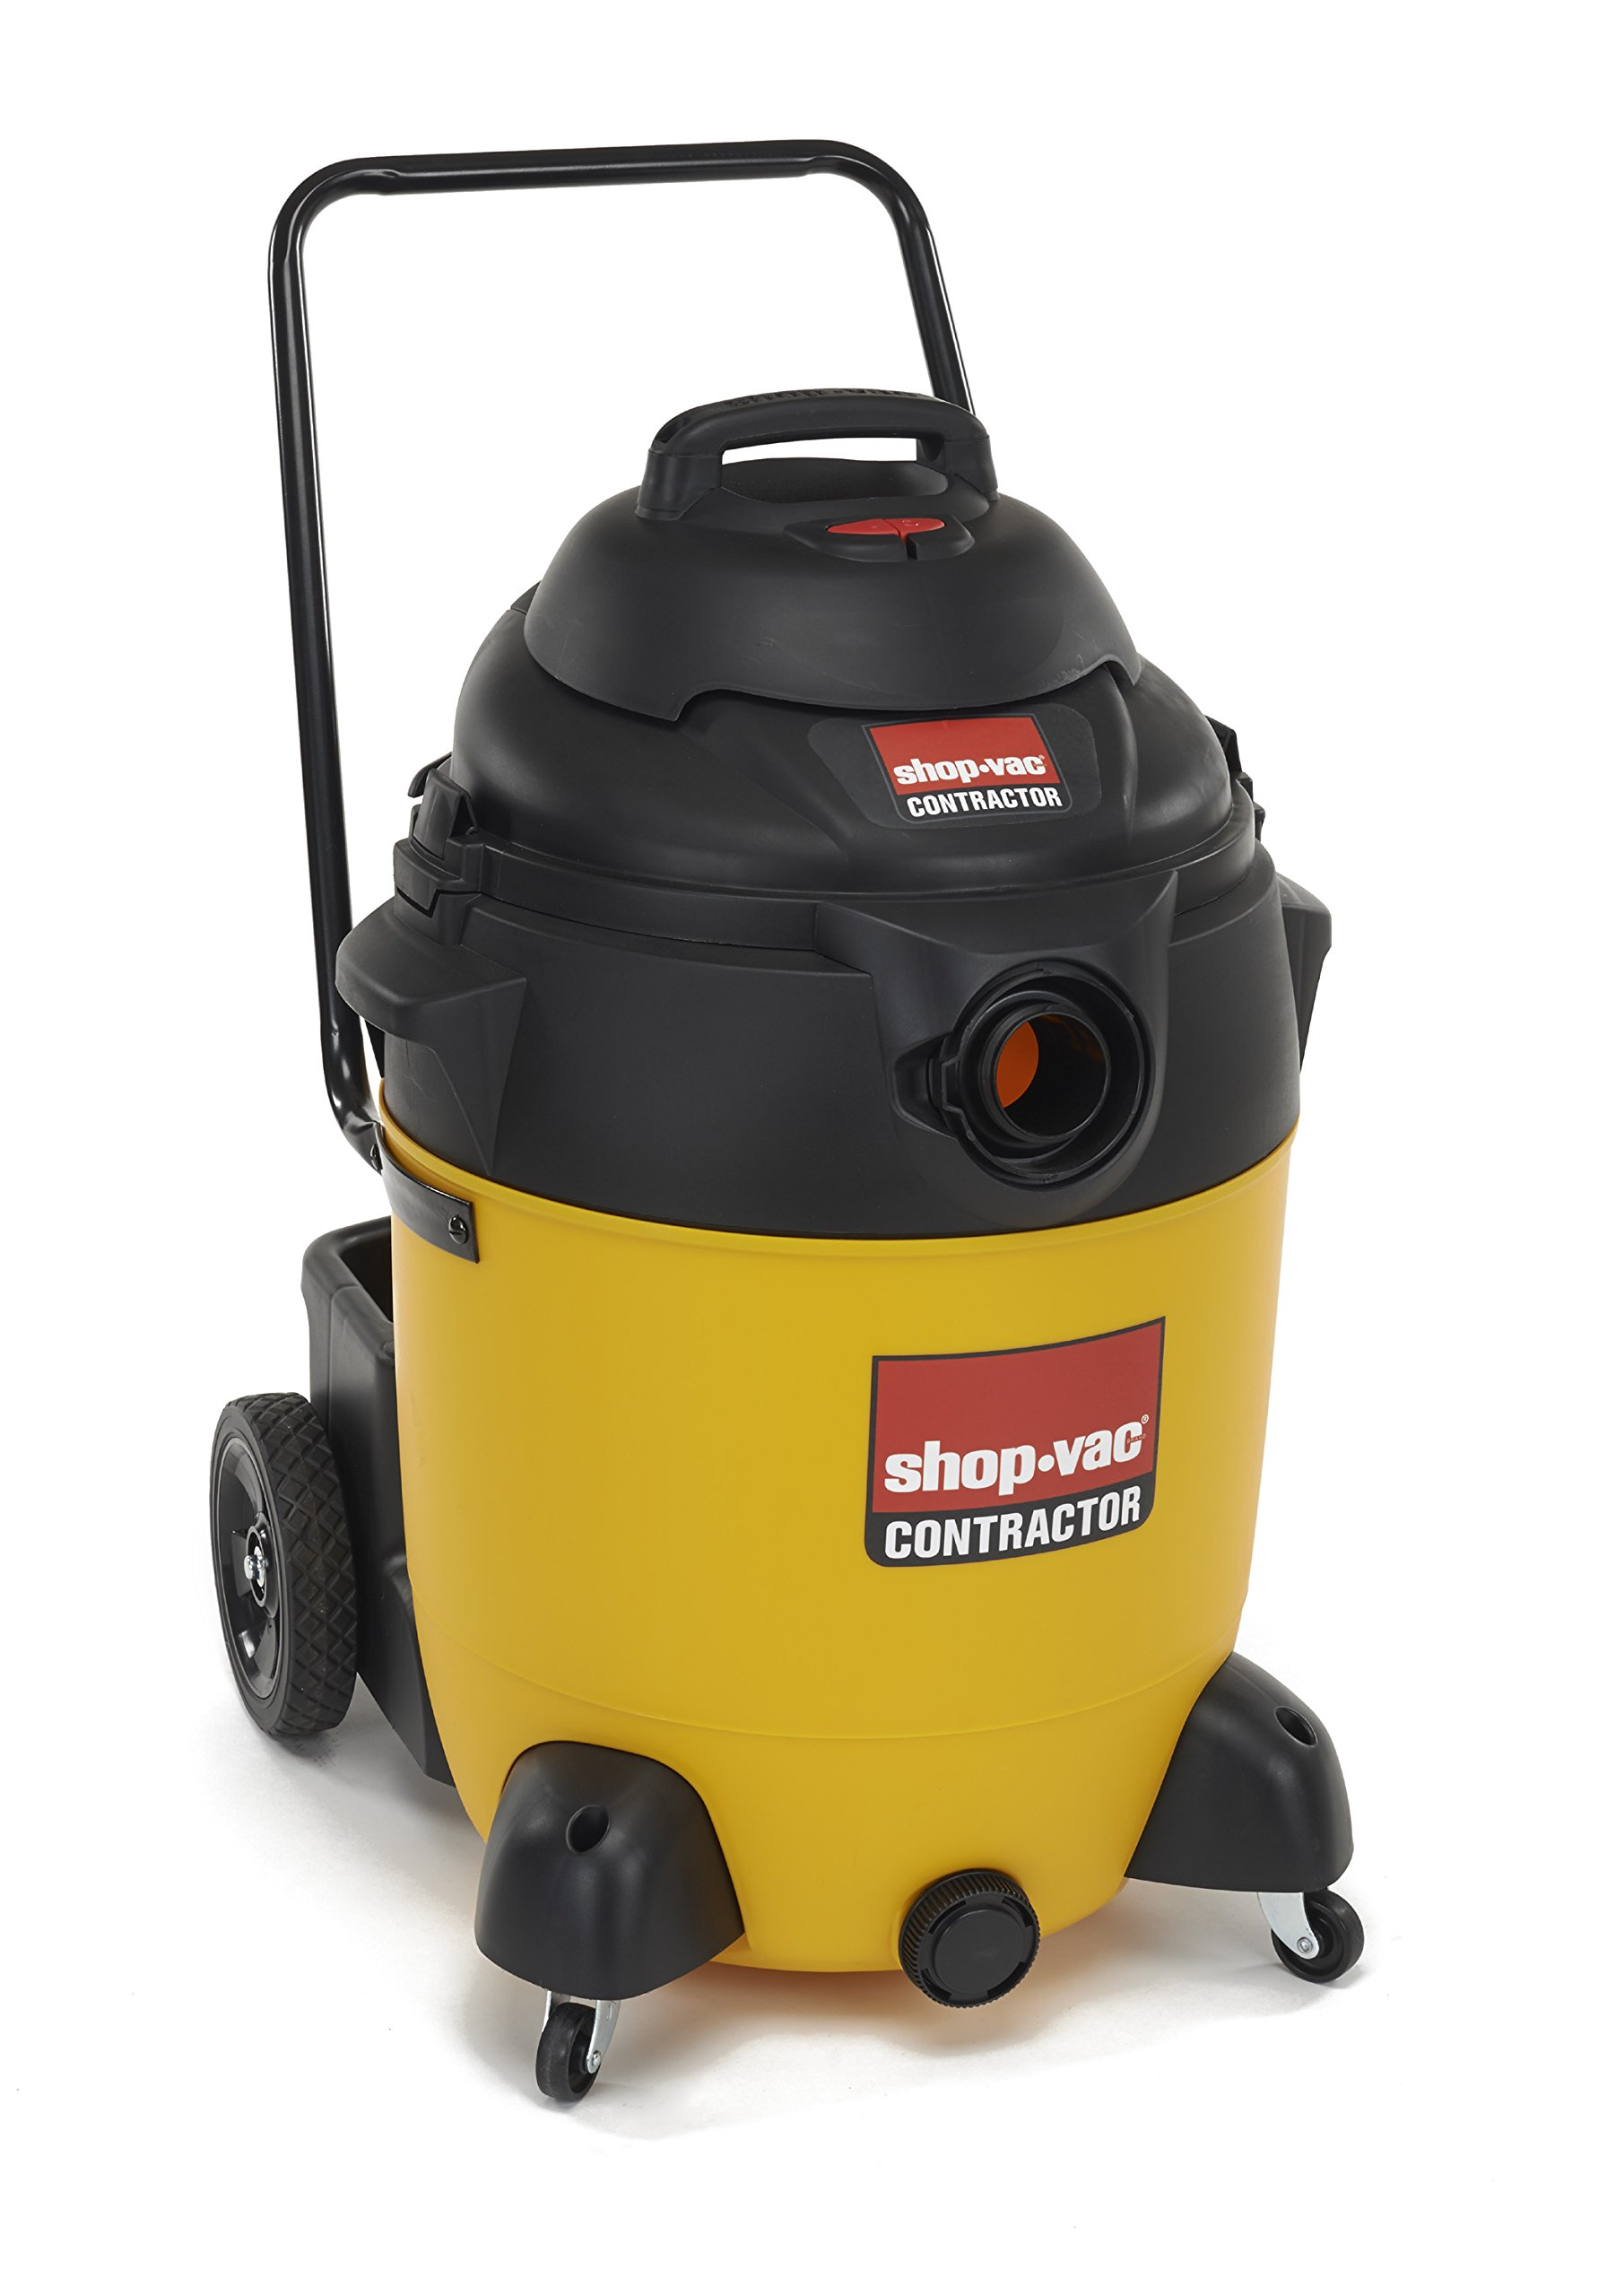 Shop-Vac 9626710 6.5 Peak HP Wet Dry Vacuum, 24-Gallon by Shop-Vac